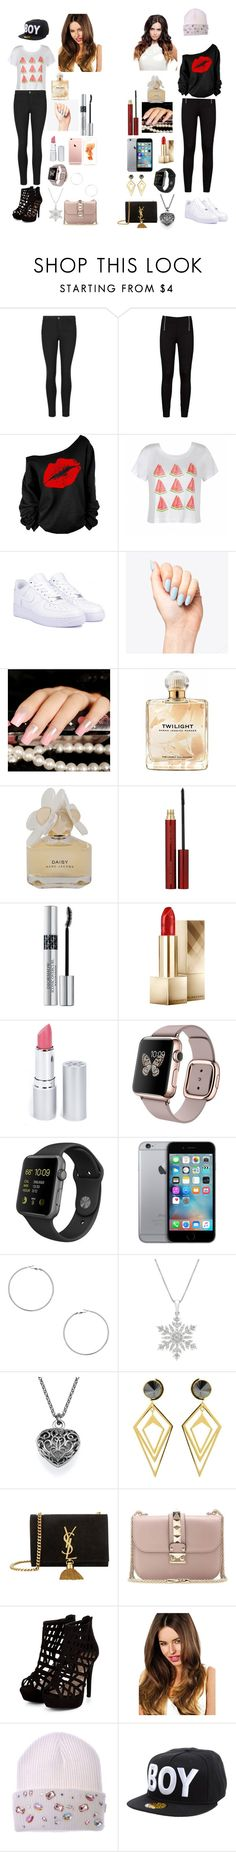 """Which one?"" by sinny4life ❤ liked on Polyvore featuring Indigo Collection, Ally Fashion, NIKE, Sarah Jessica Parker, Marc by Marc Jacobs, Kevyn Aucoin, Christian Dior, Burberry, HoneyBee Gardens and Dorothy Perkins"